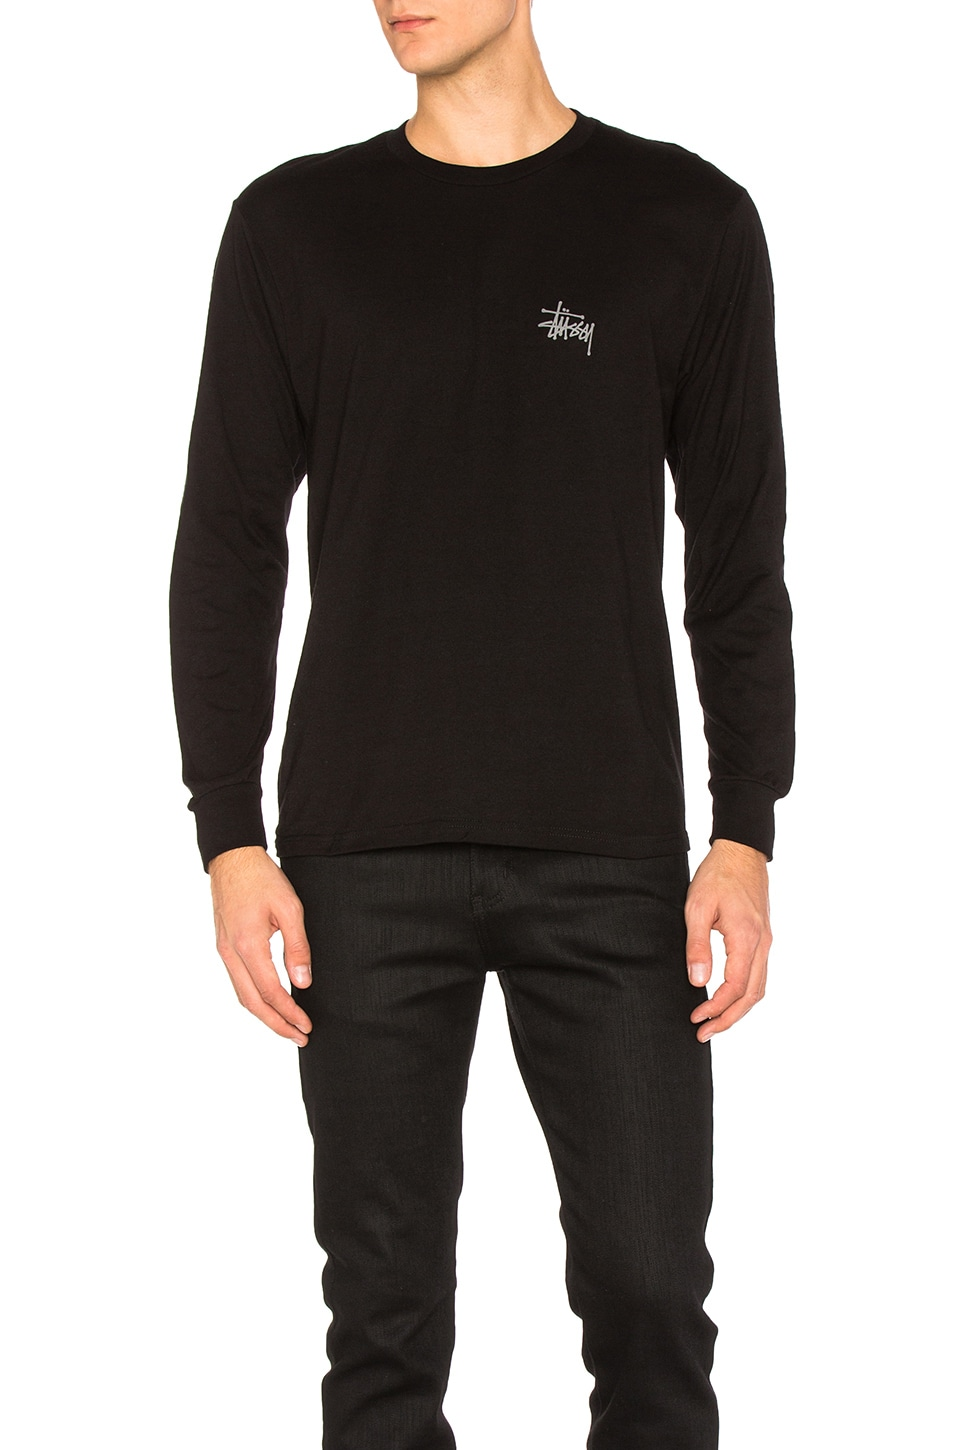 Basic Stussy L/S Tee by Stussy